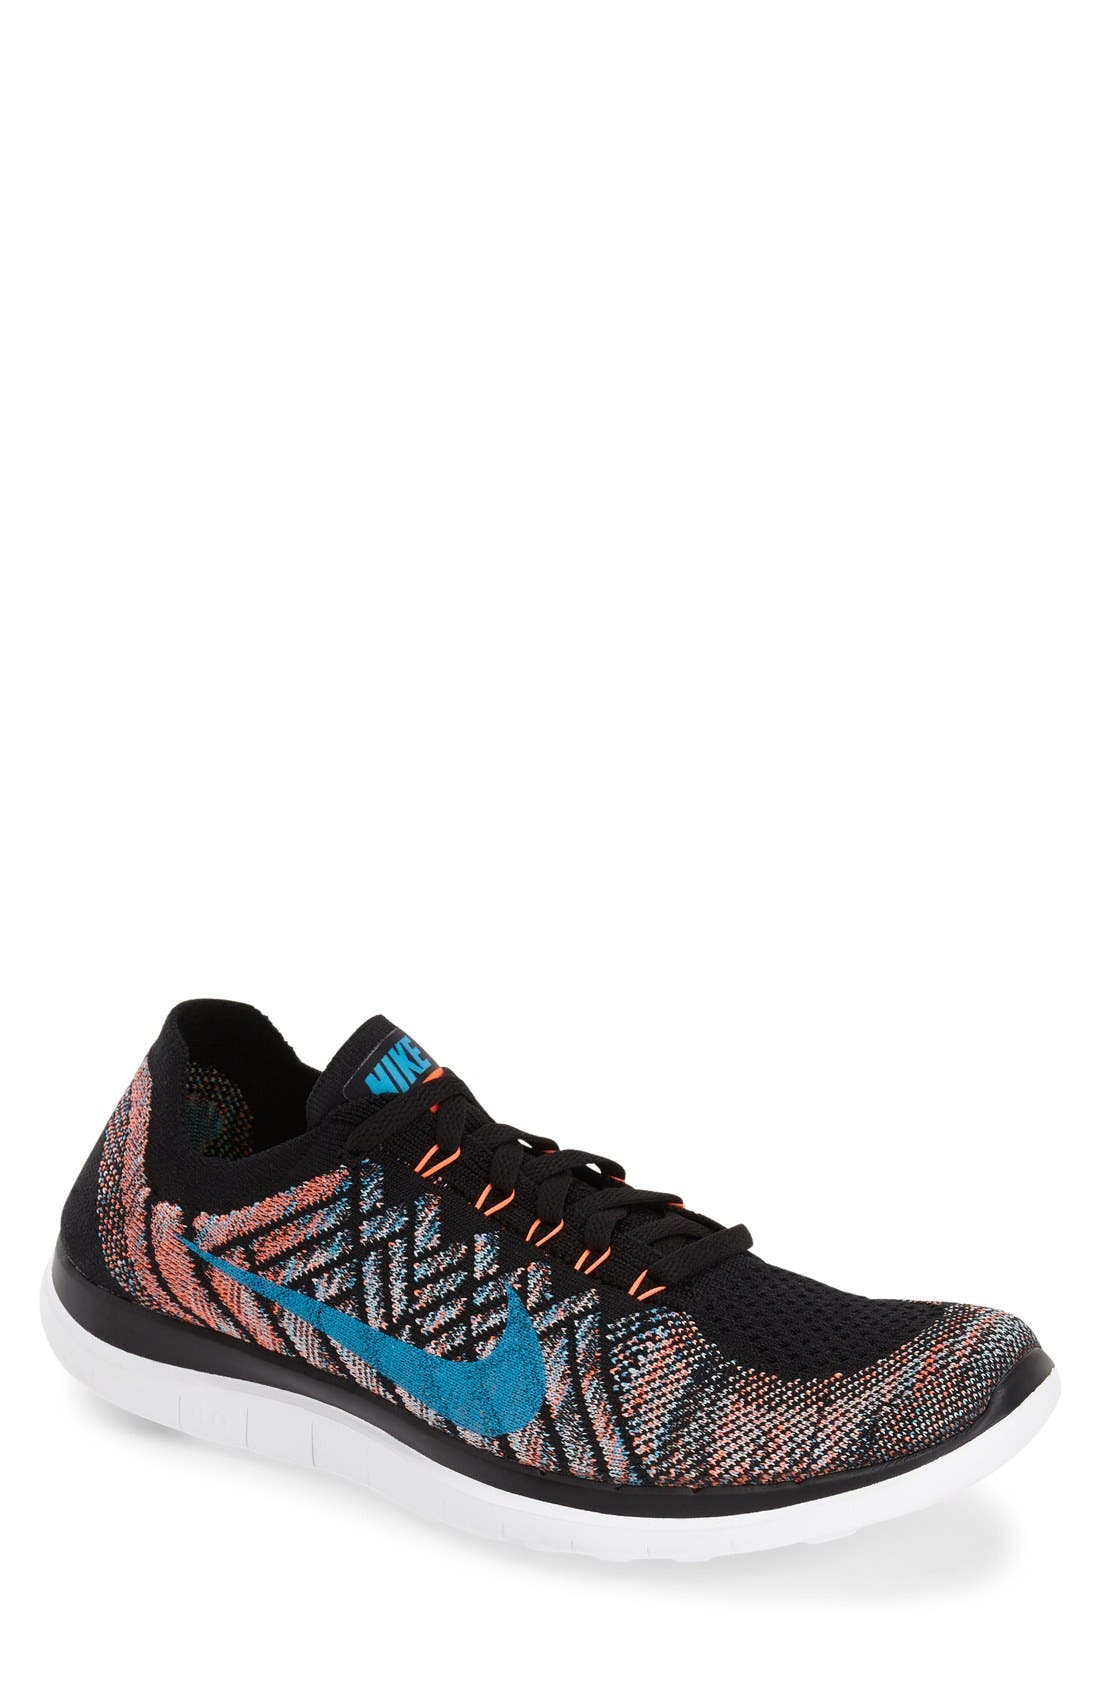 Alternate Image 1 Selected - Nike 'Free Flyknit 4.0' Running Shoe (Men)